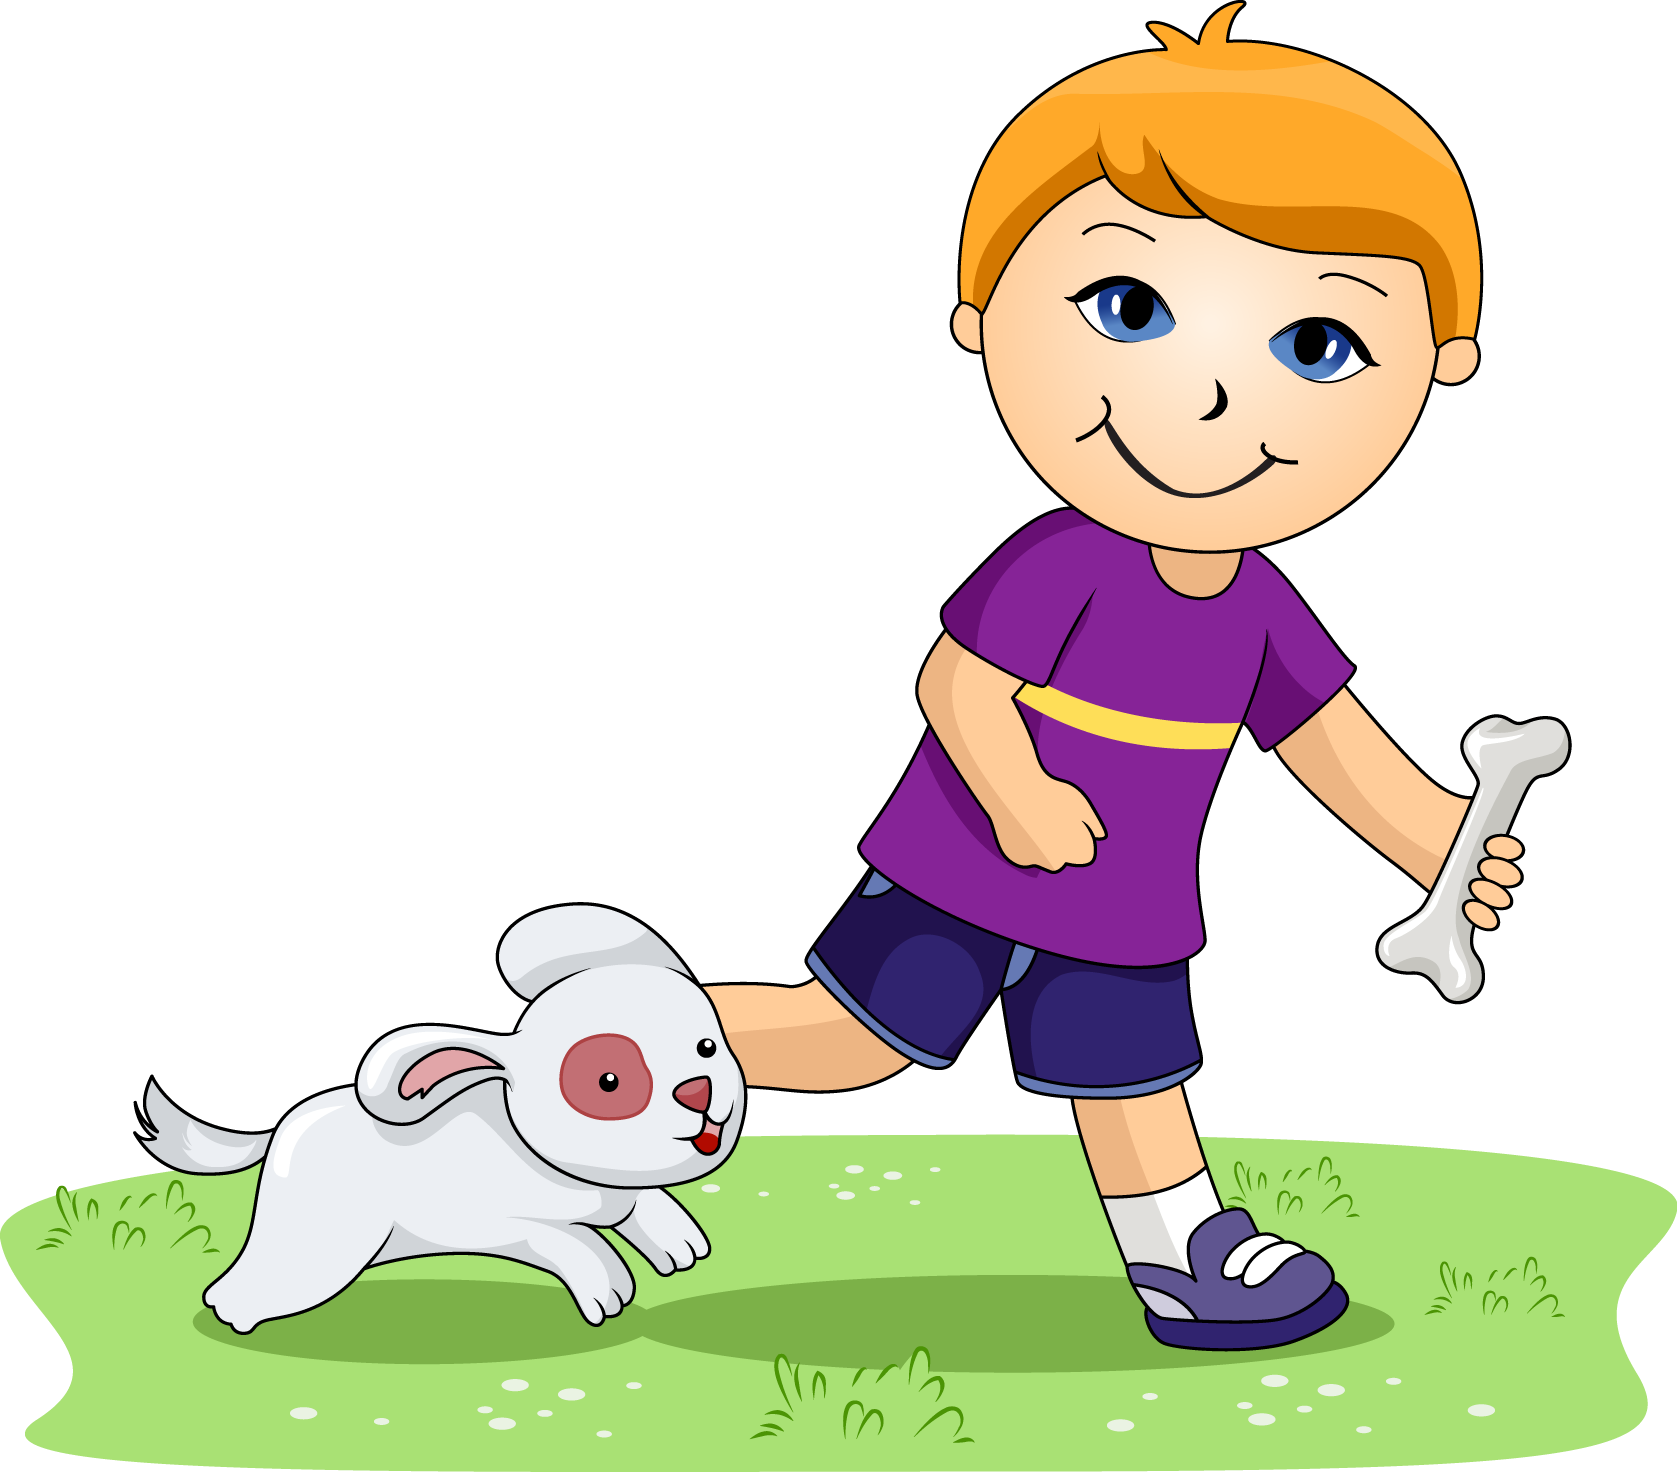 Boy and dog clipart banner transparent library My pet dog clipart - ClipartFest banner transparent library